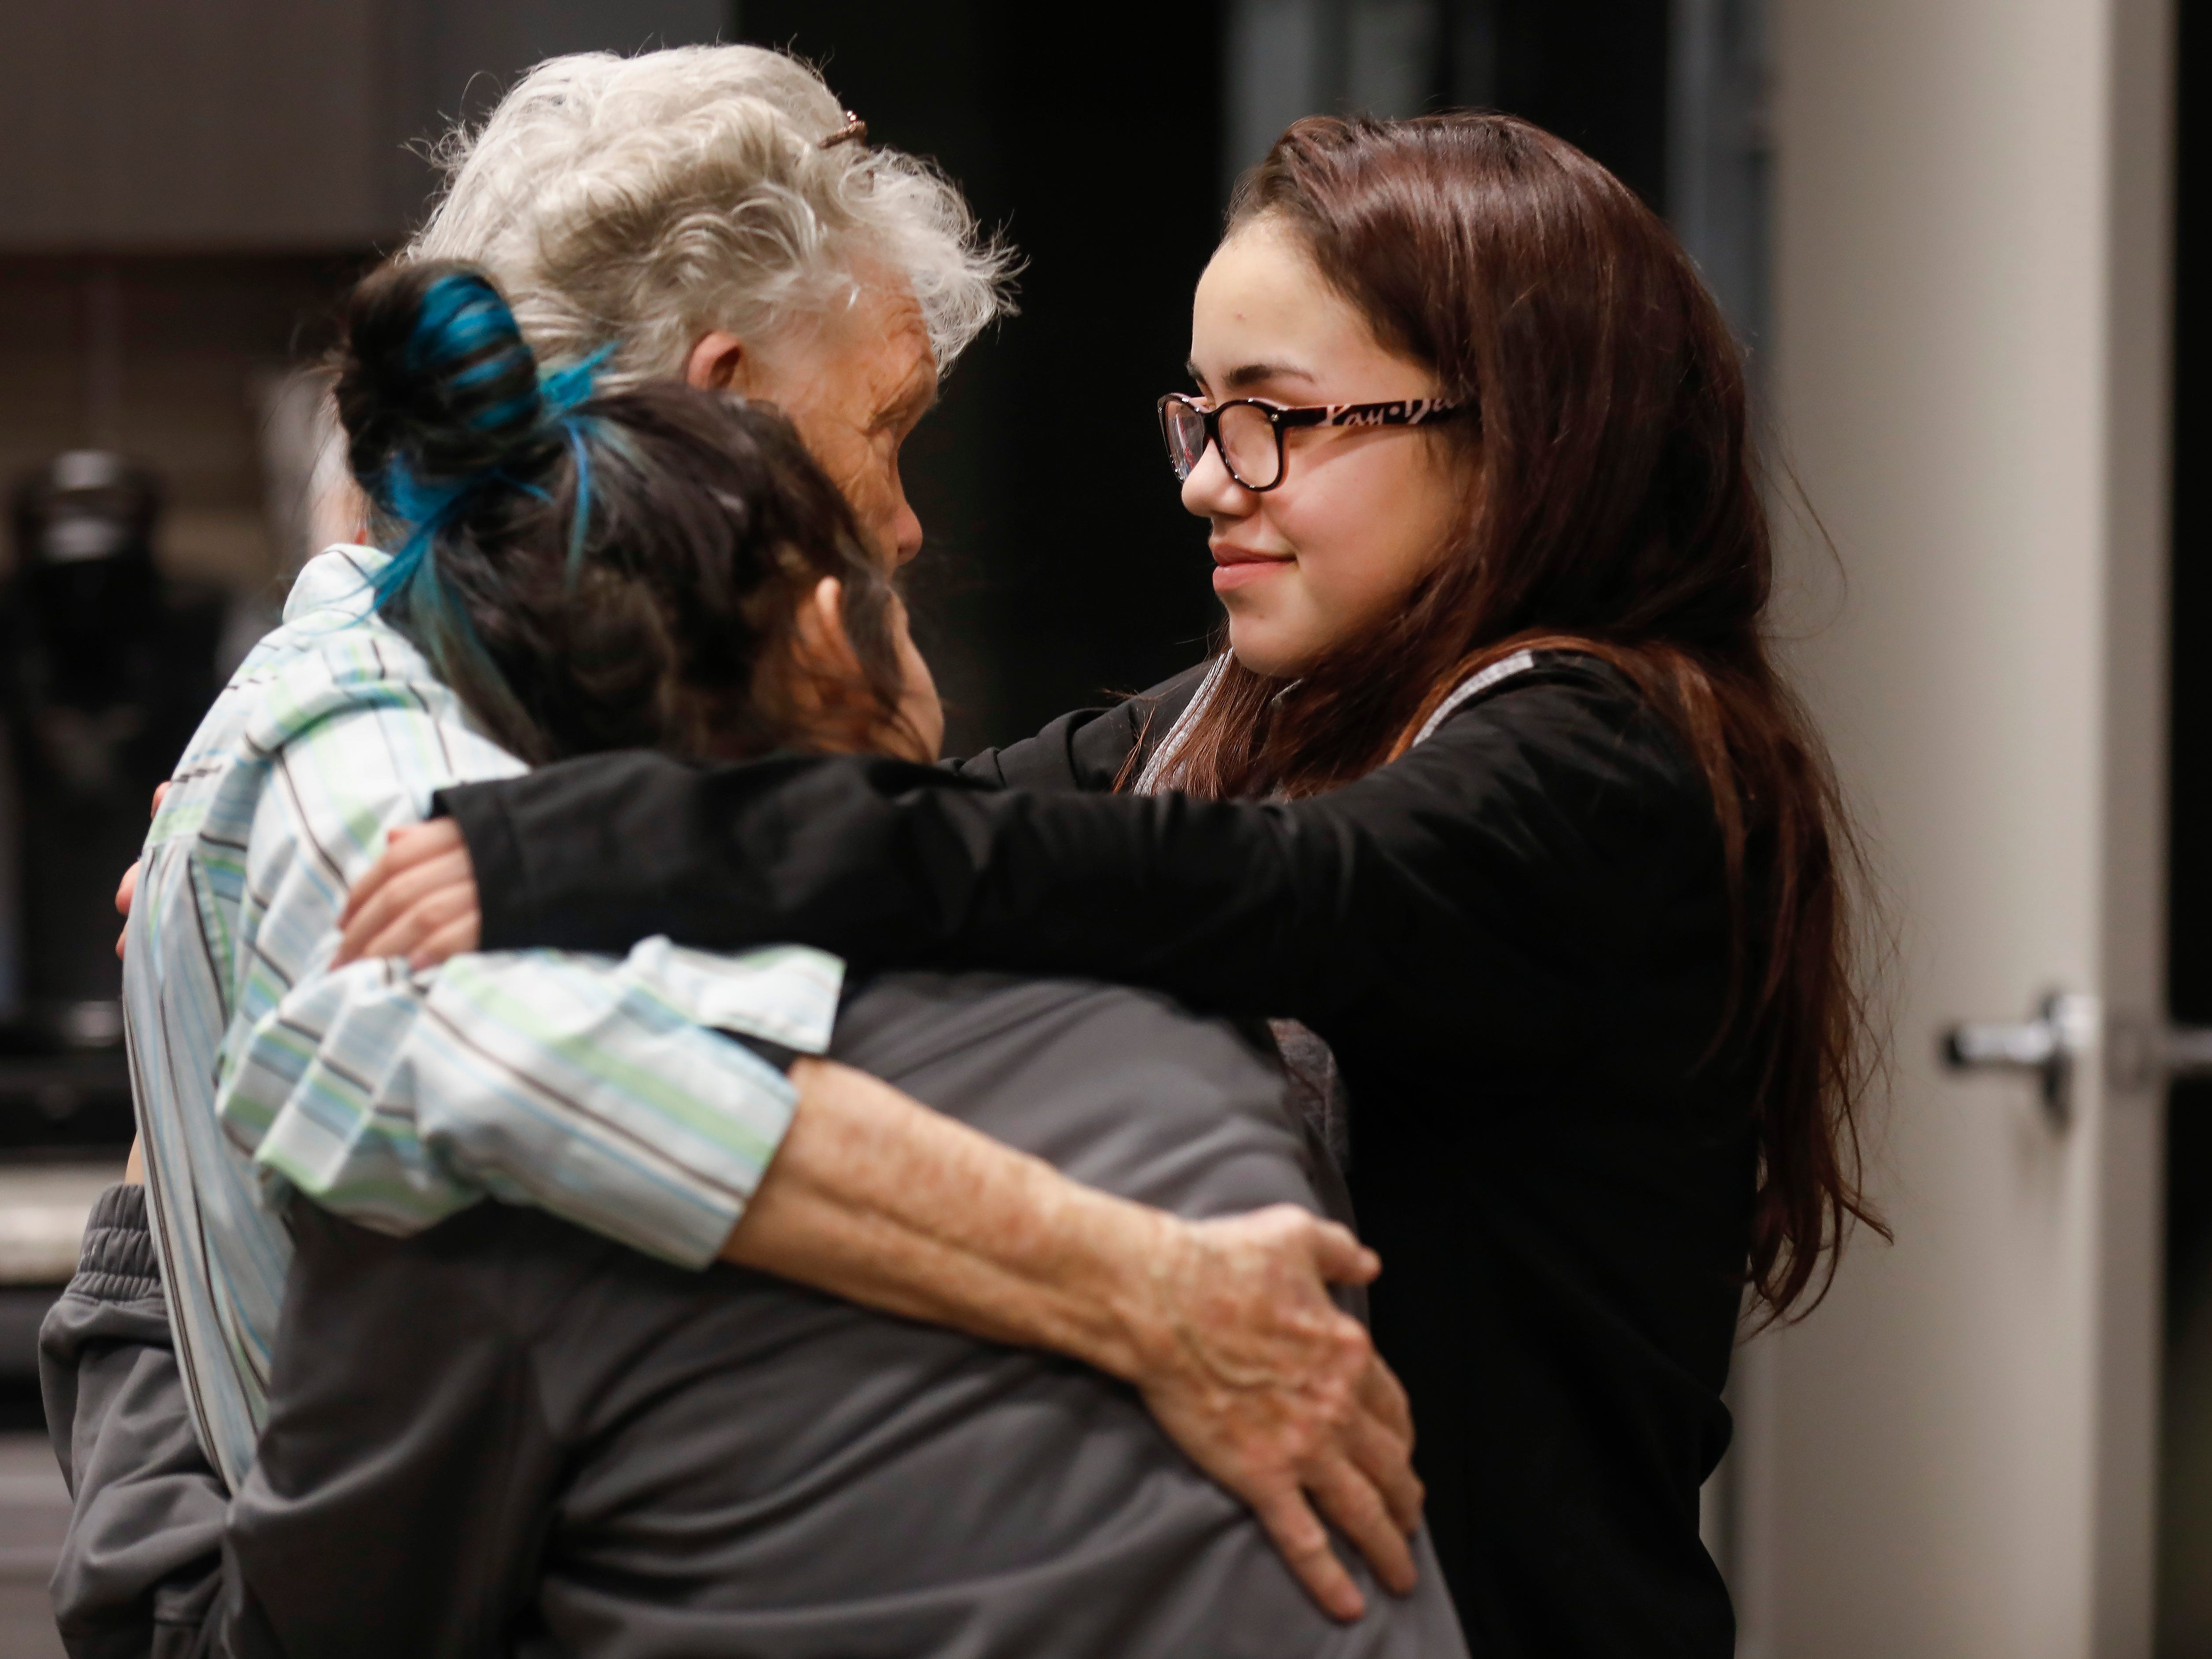 Pat Ayers hugs her great- granddaughters Abigail Sahagun, right, and Emileigh Sahagun after employees of J.D. Byrider gave them gifts and forgave their car loan on Wednesday, Dec. 19, 2018. Ayers daughter and the Sahaguns' grandmother, Barbara Foster, was killed during a road rage incident on Nov. 20.